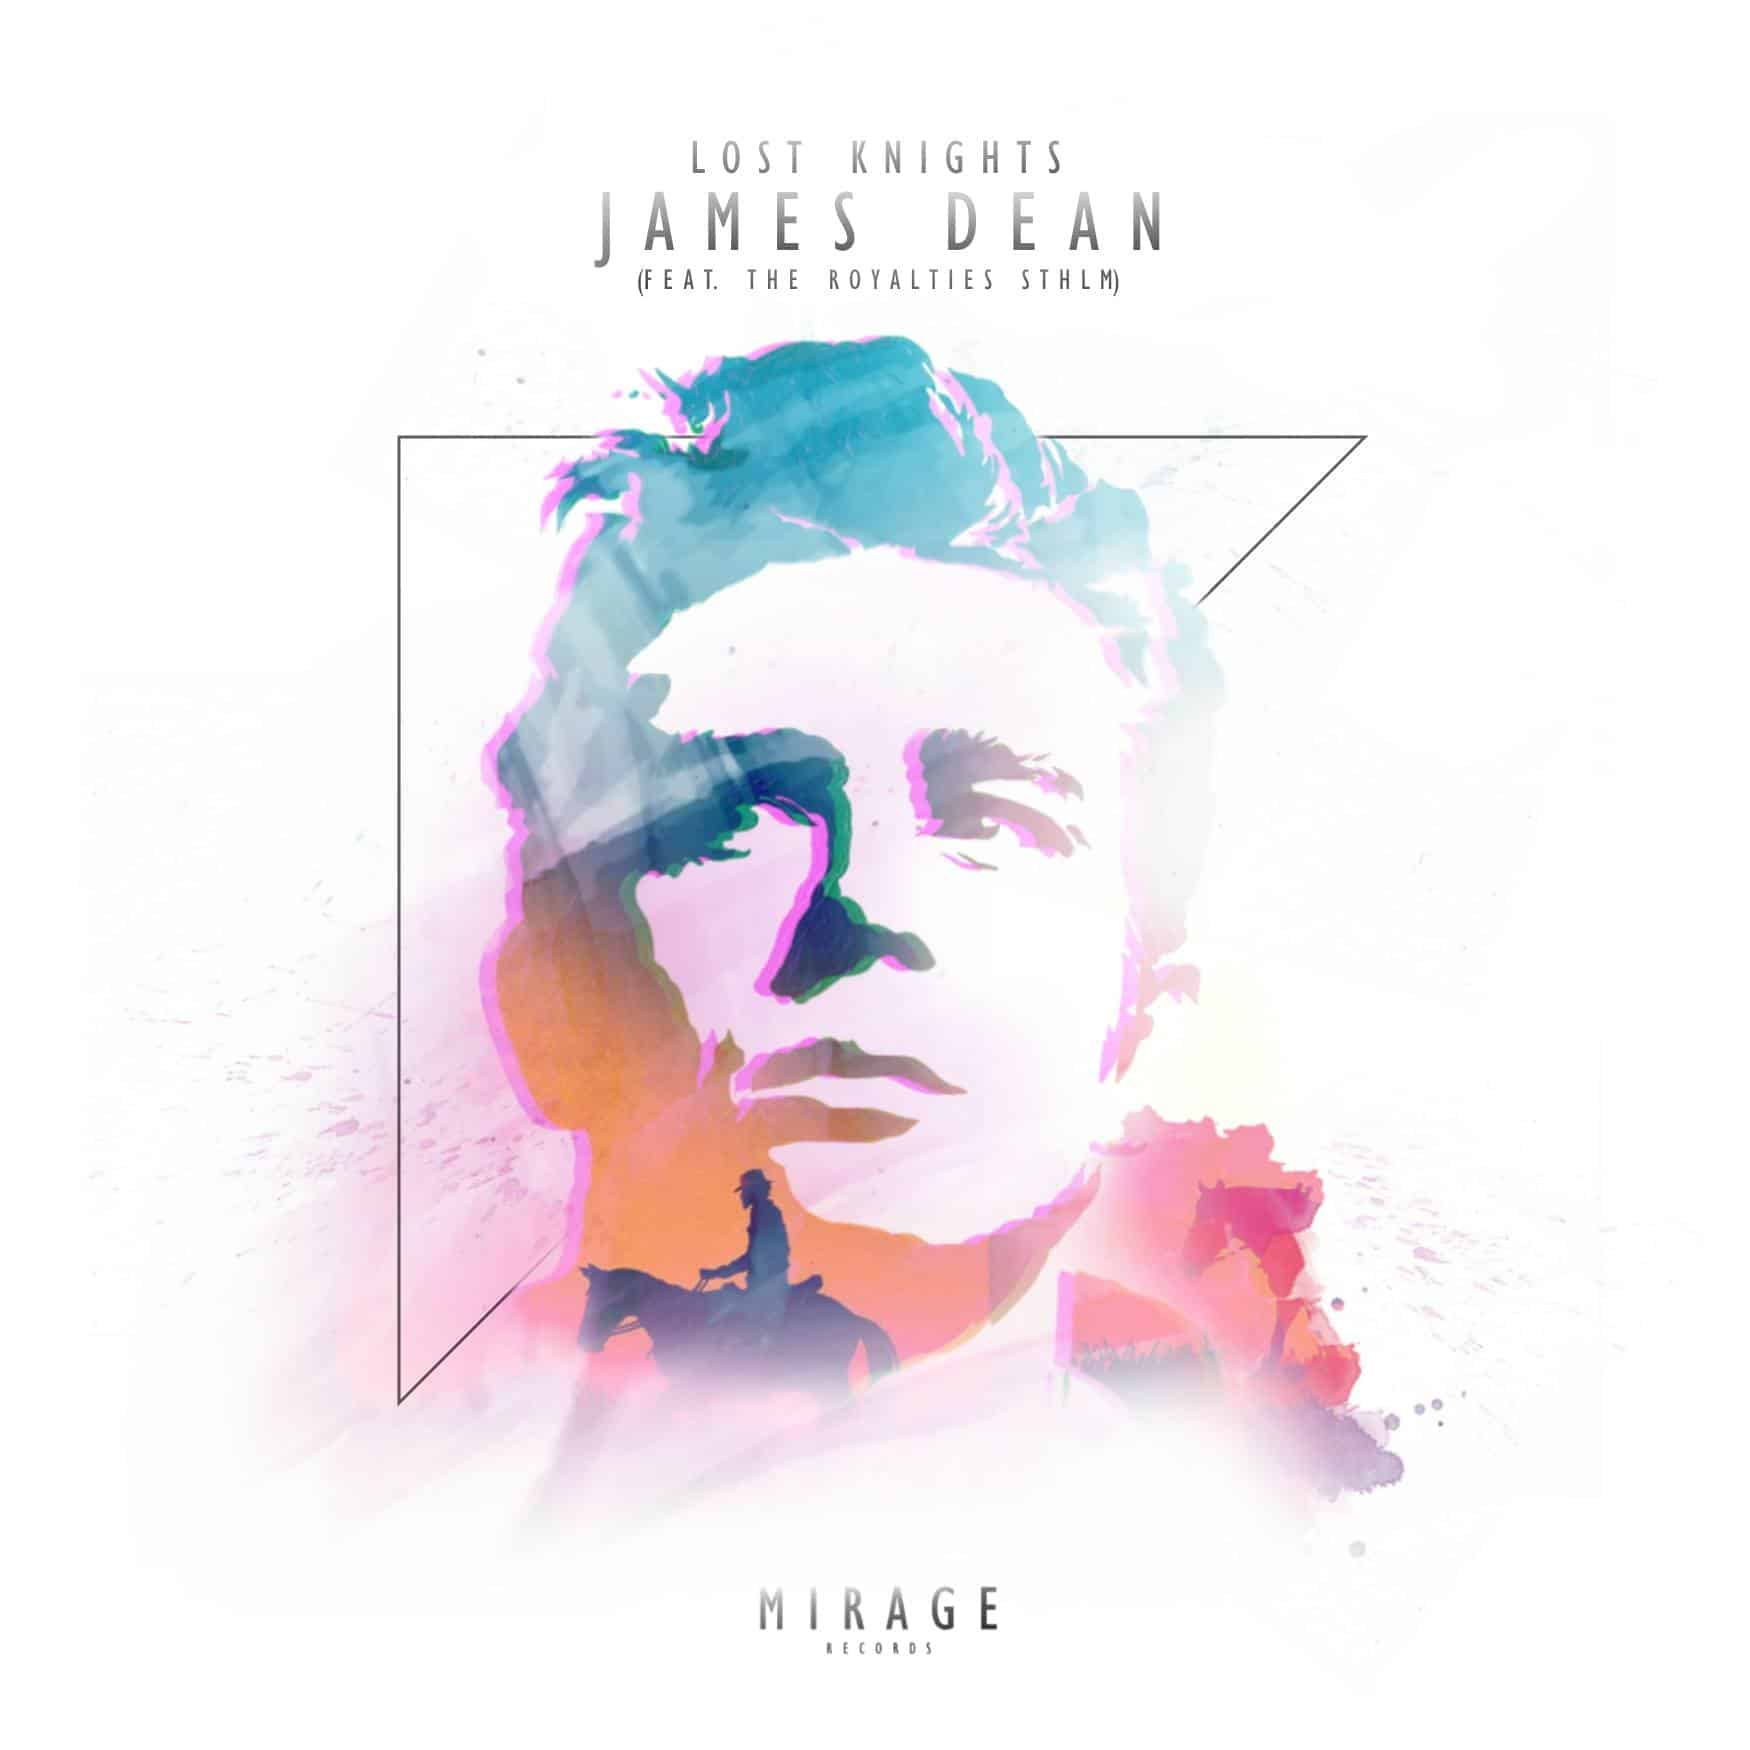 Lost Knights – James Dean (feat. The Royalties STHLM) [Mirage]